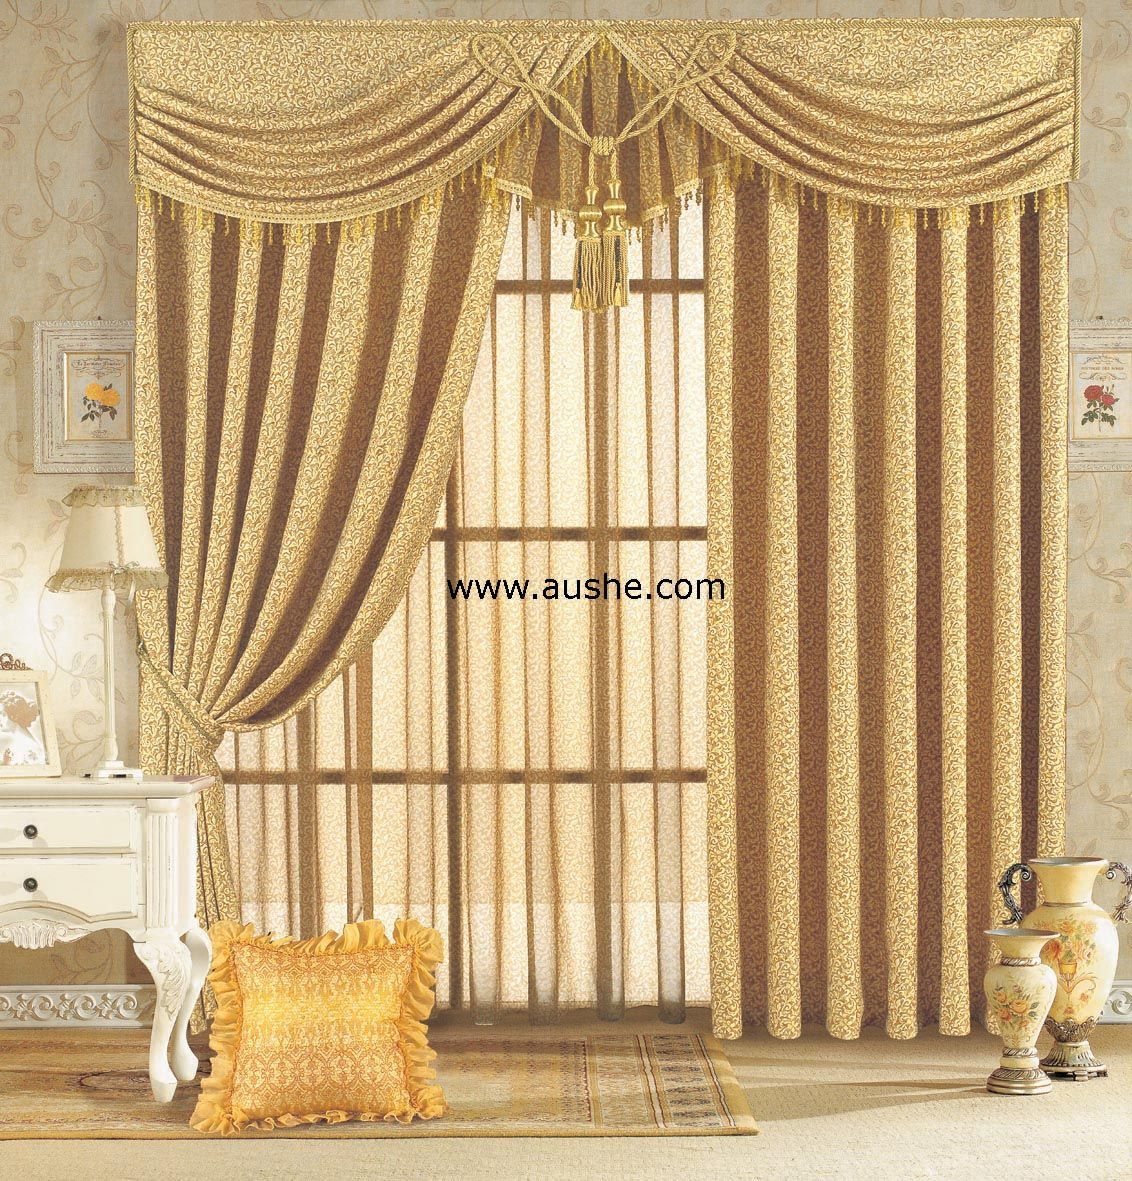 Curtain and valance designs - Curtains And Valances Curtain Designs Curtain Valances Curtain Drapery